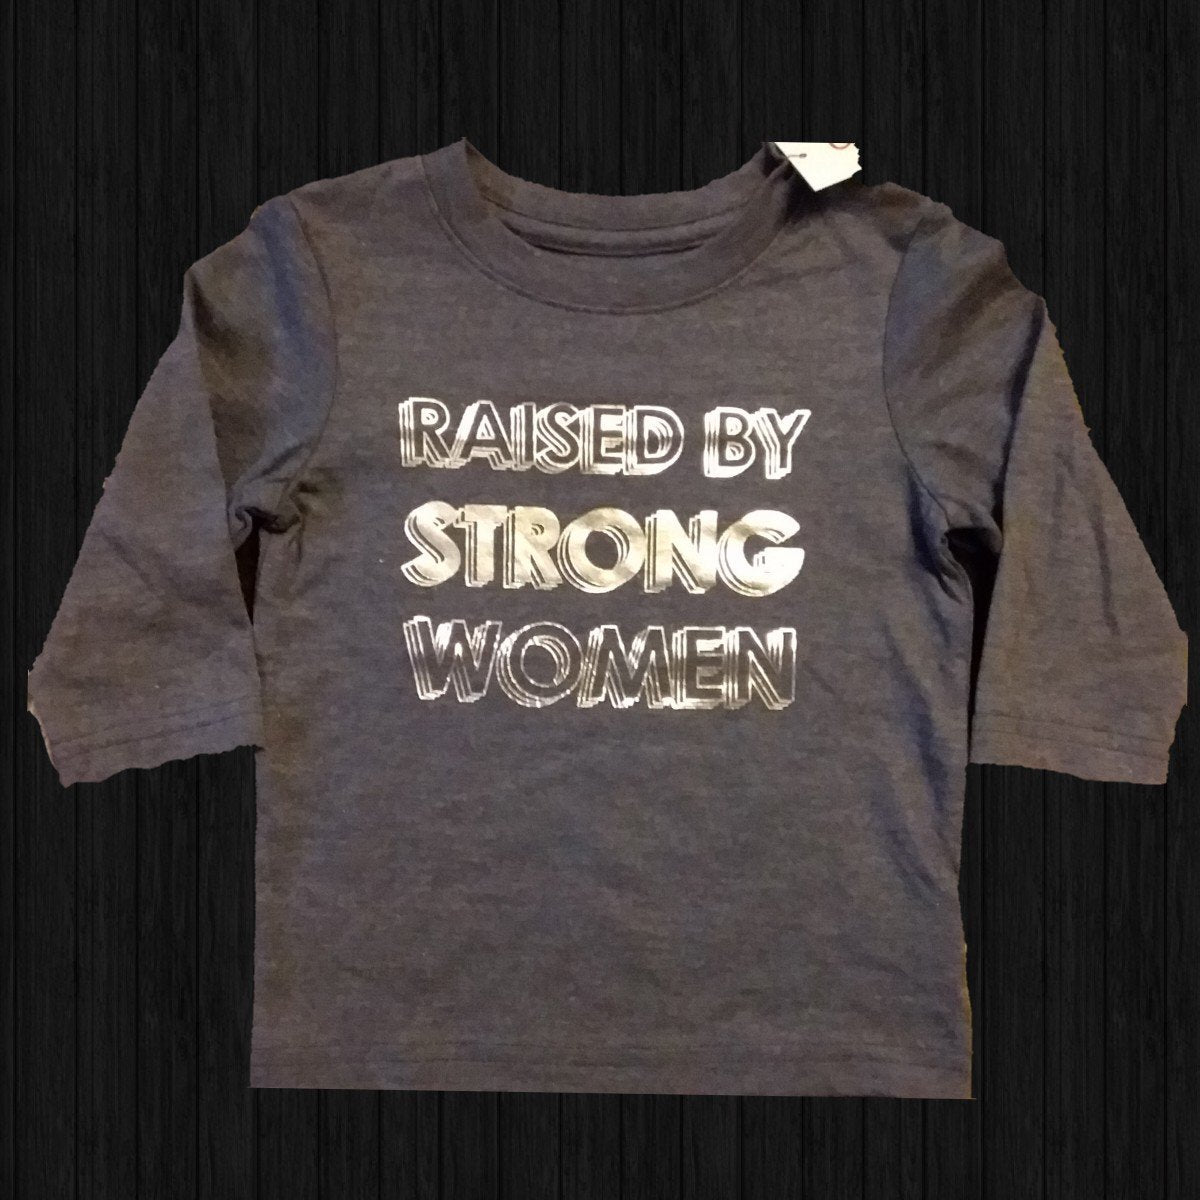 Raised By Strong Women - LilChic BabyBug Boutique